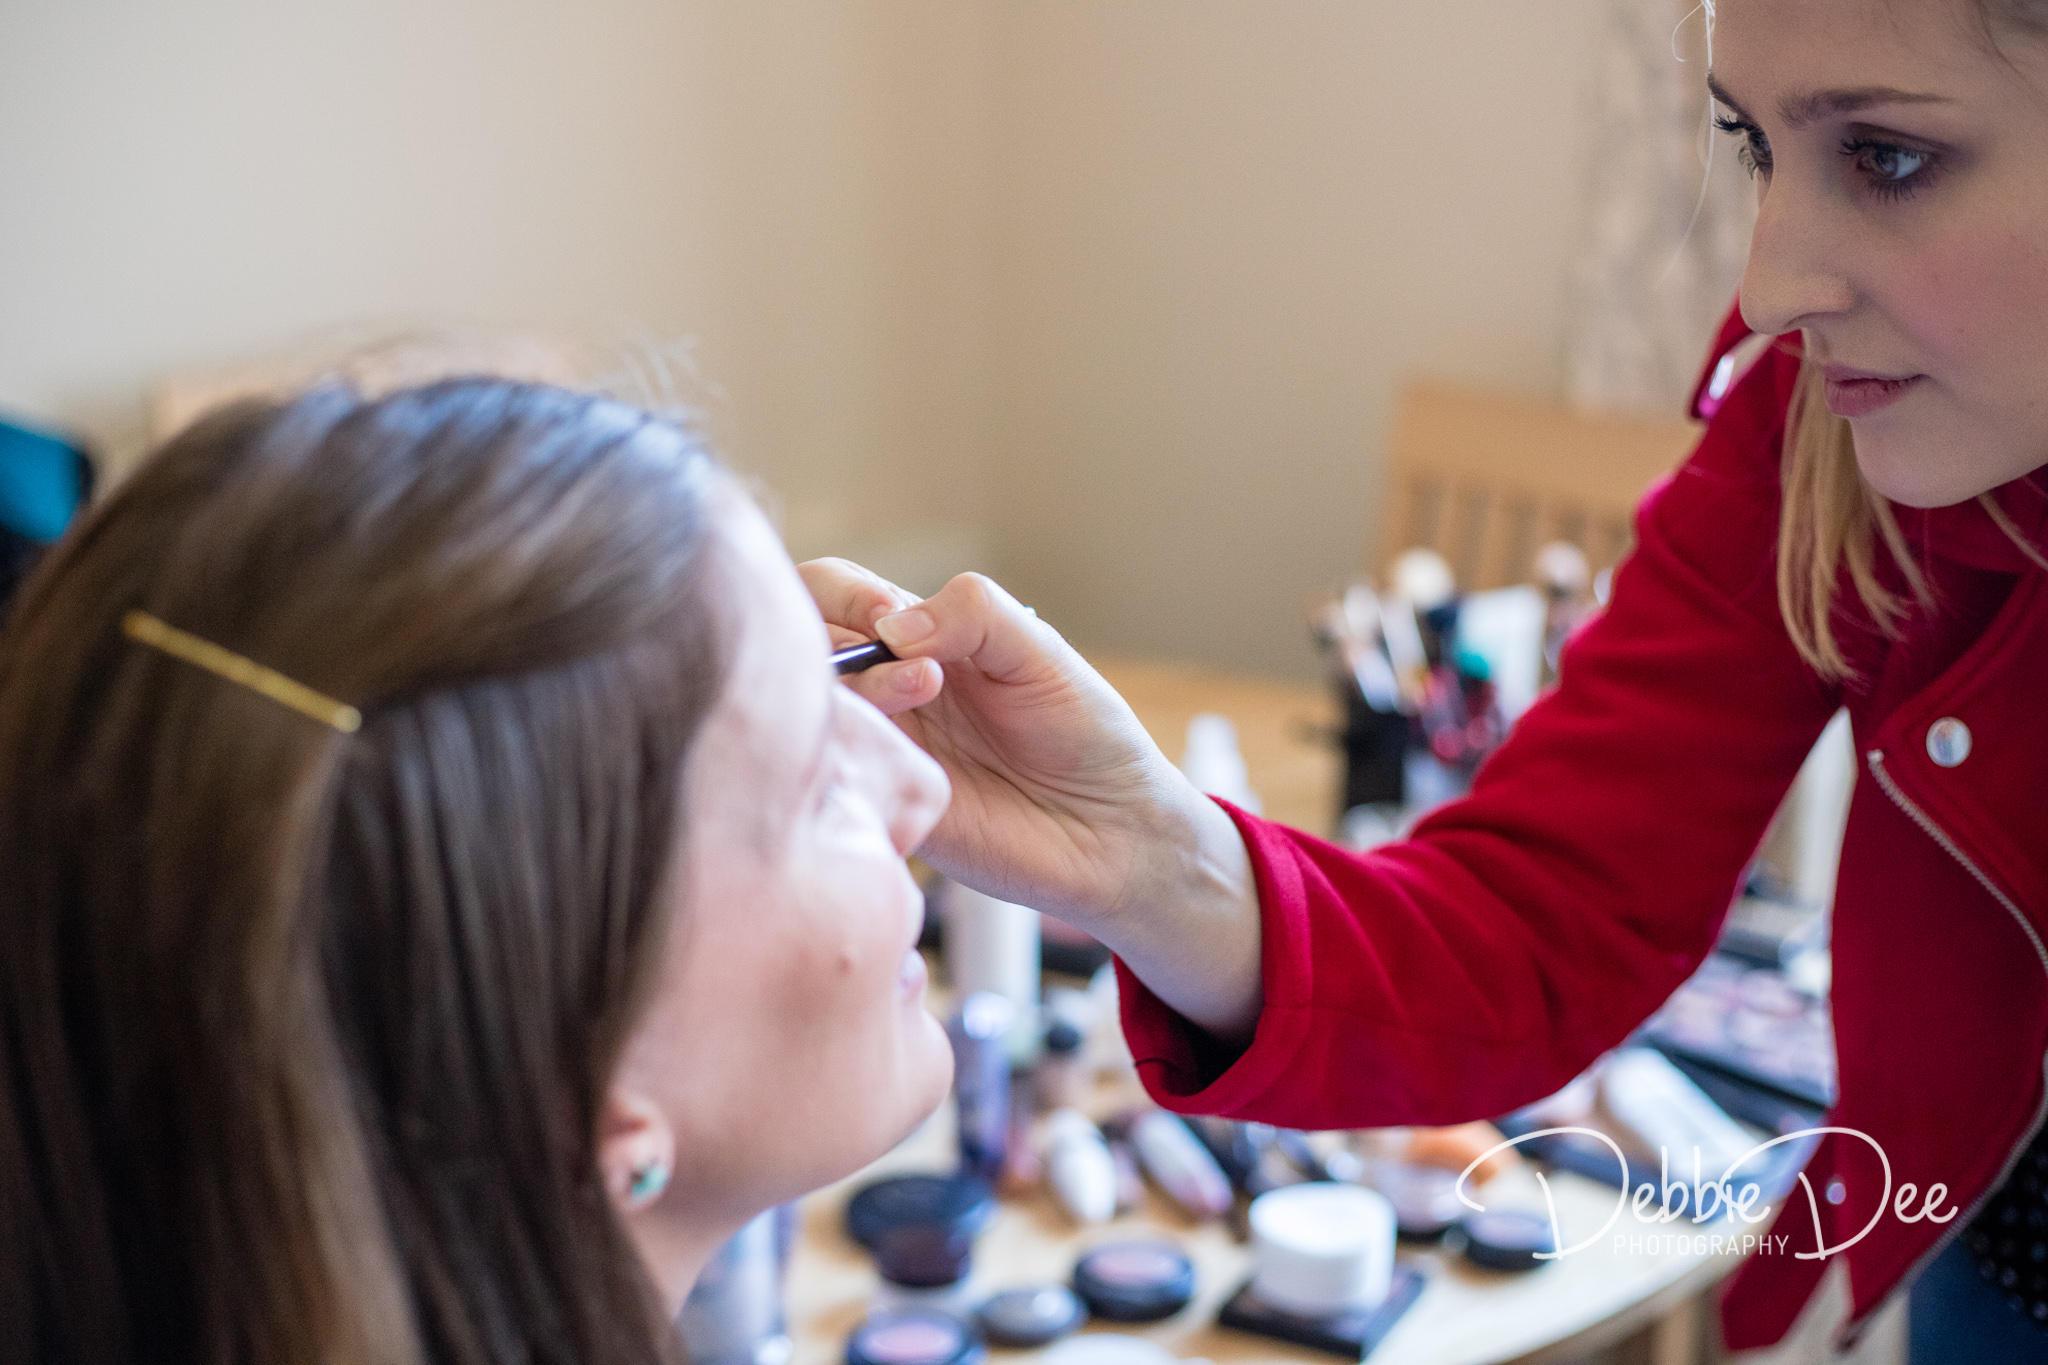 Aberdeenshire Maternity Photography Session - Make-up by Tiffany Dawson Make-Up Artistry - make up being applied